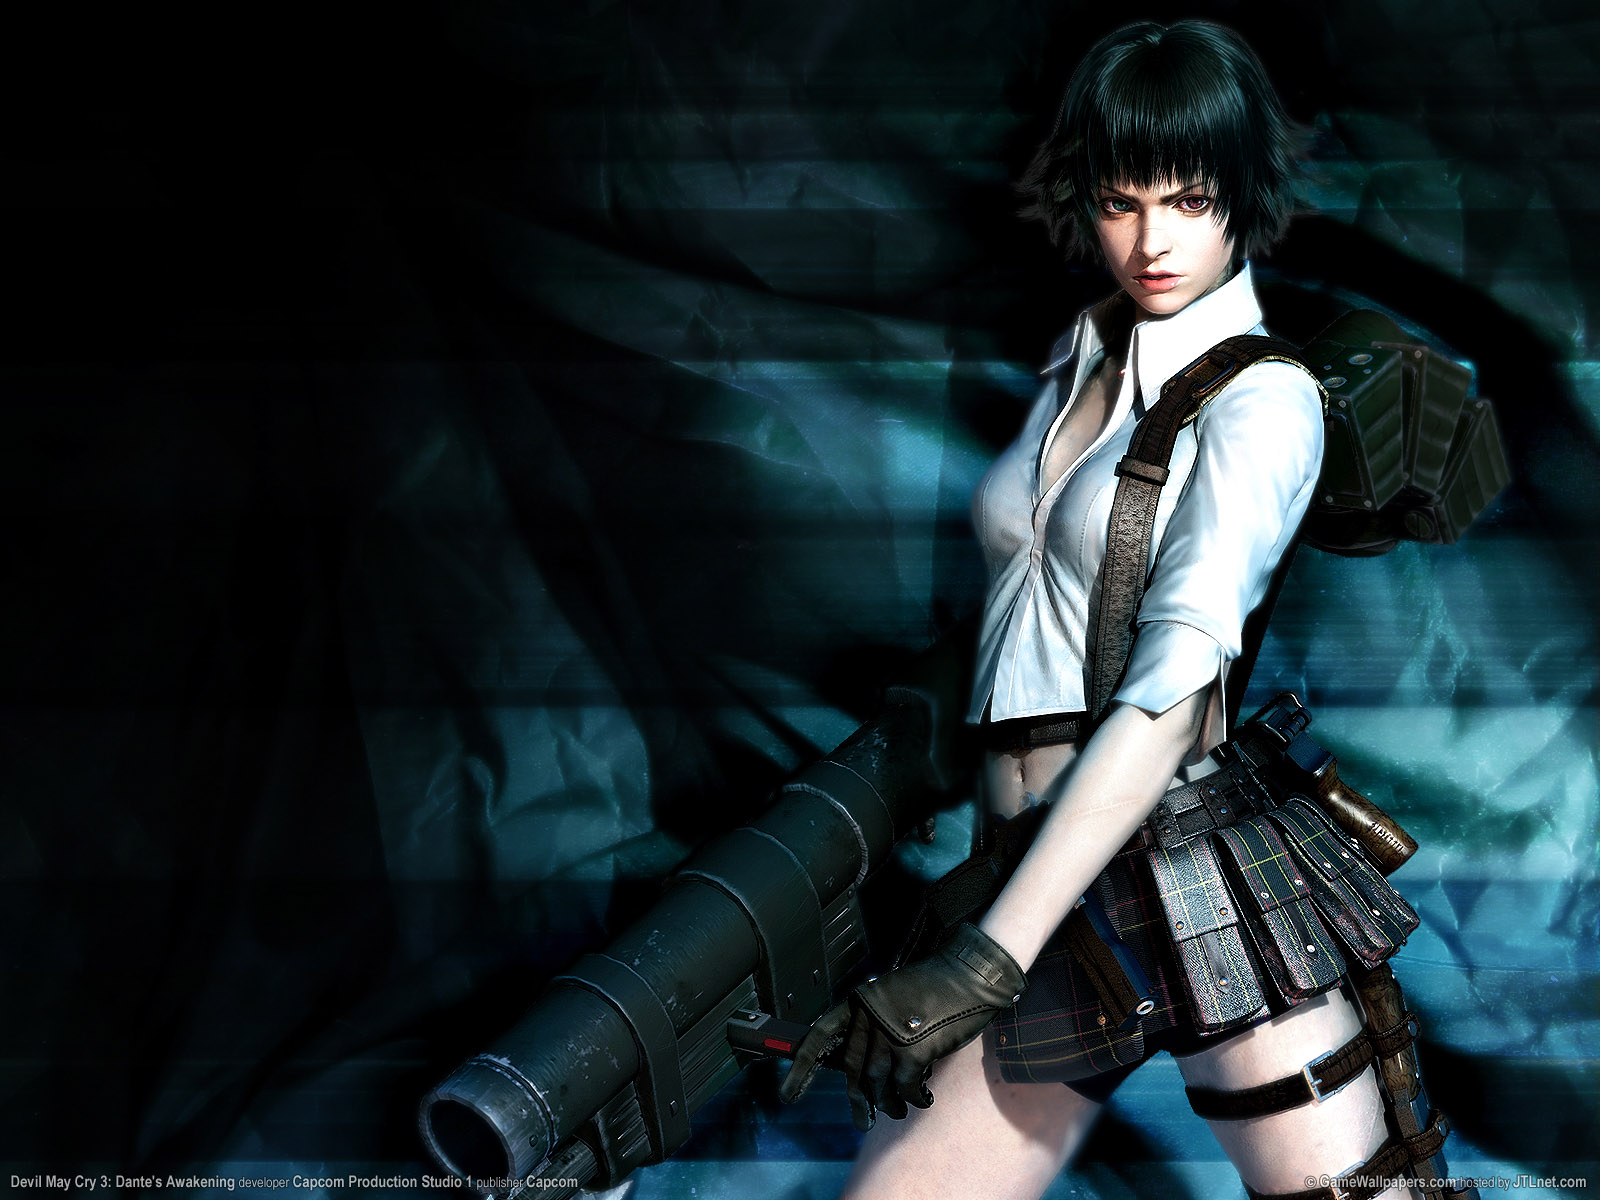 manga and anime wallpapers: devil may cry 4 hd wallpaper